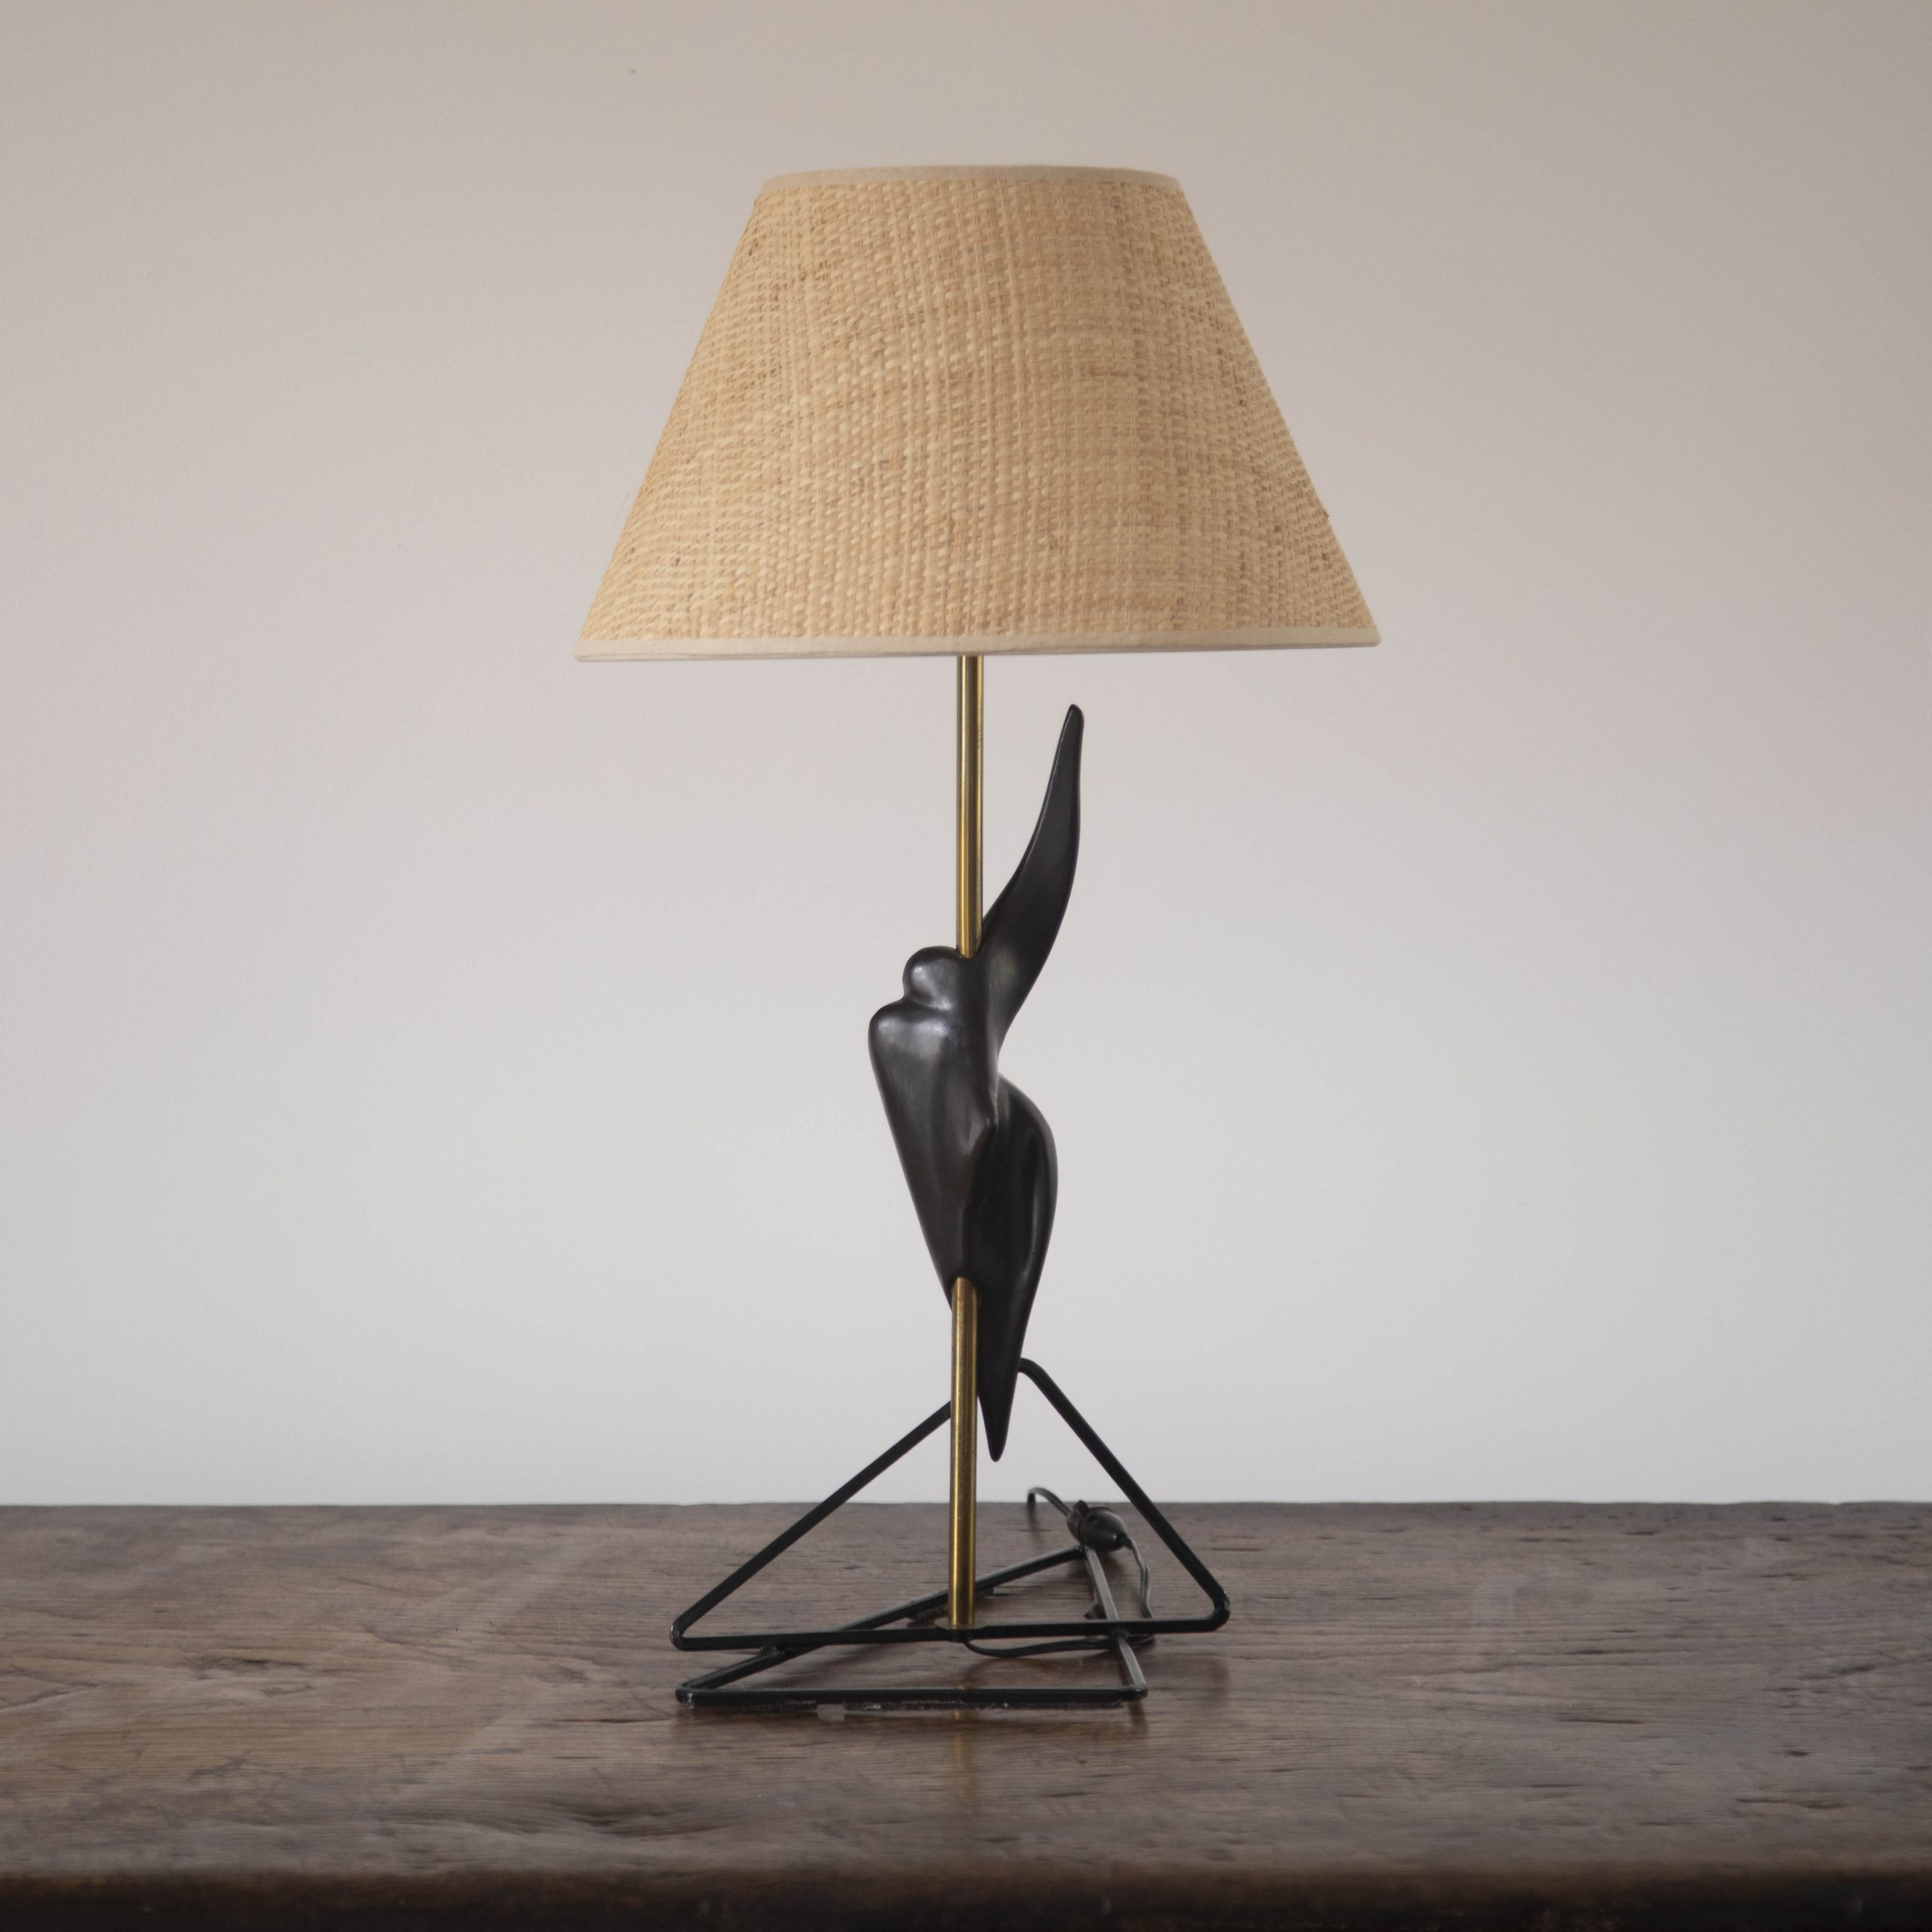 Free Form Ceramic Lamp in the Manner of Georges Jouve